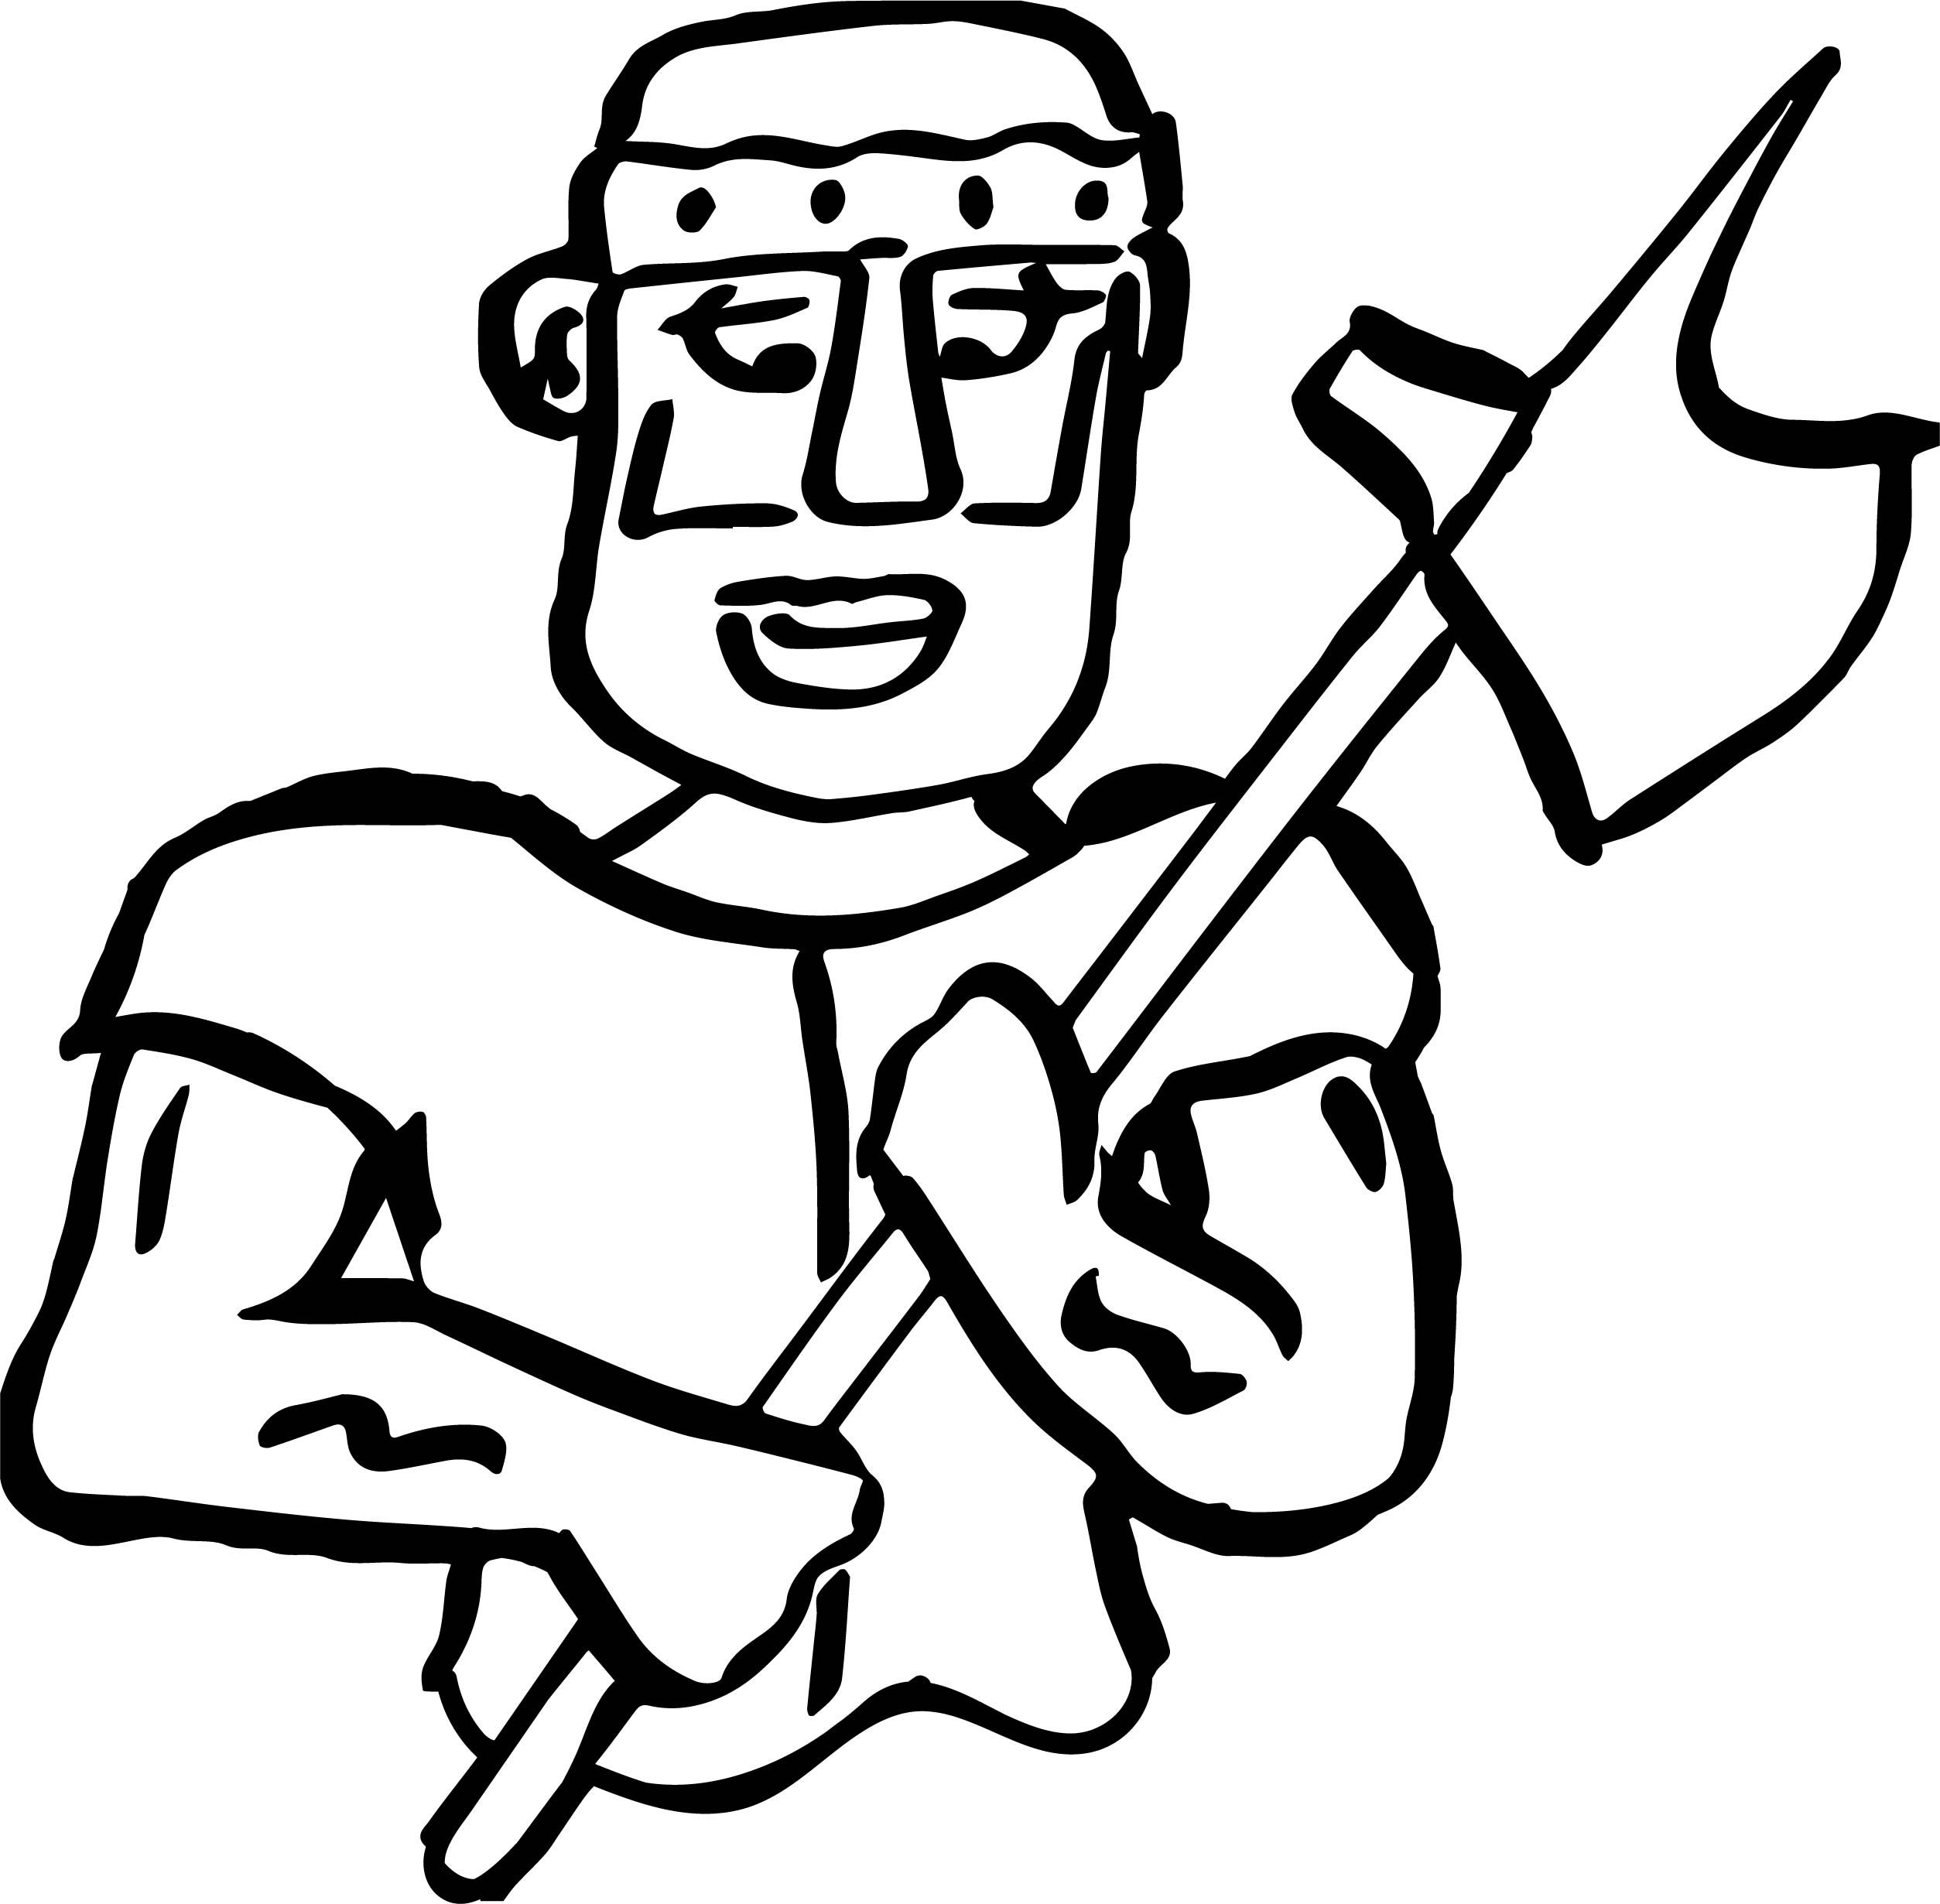 Cool Roman Soldier Axe Coloring Page Coloring Pages Coloring